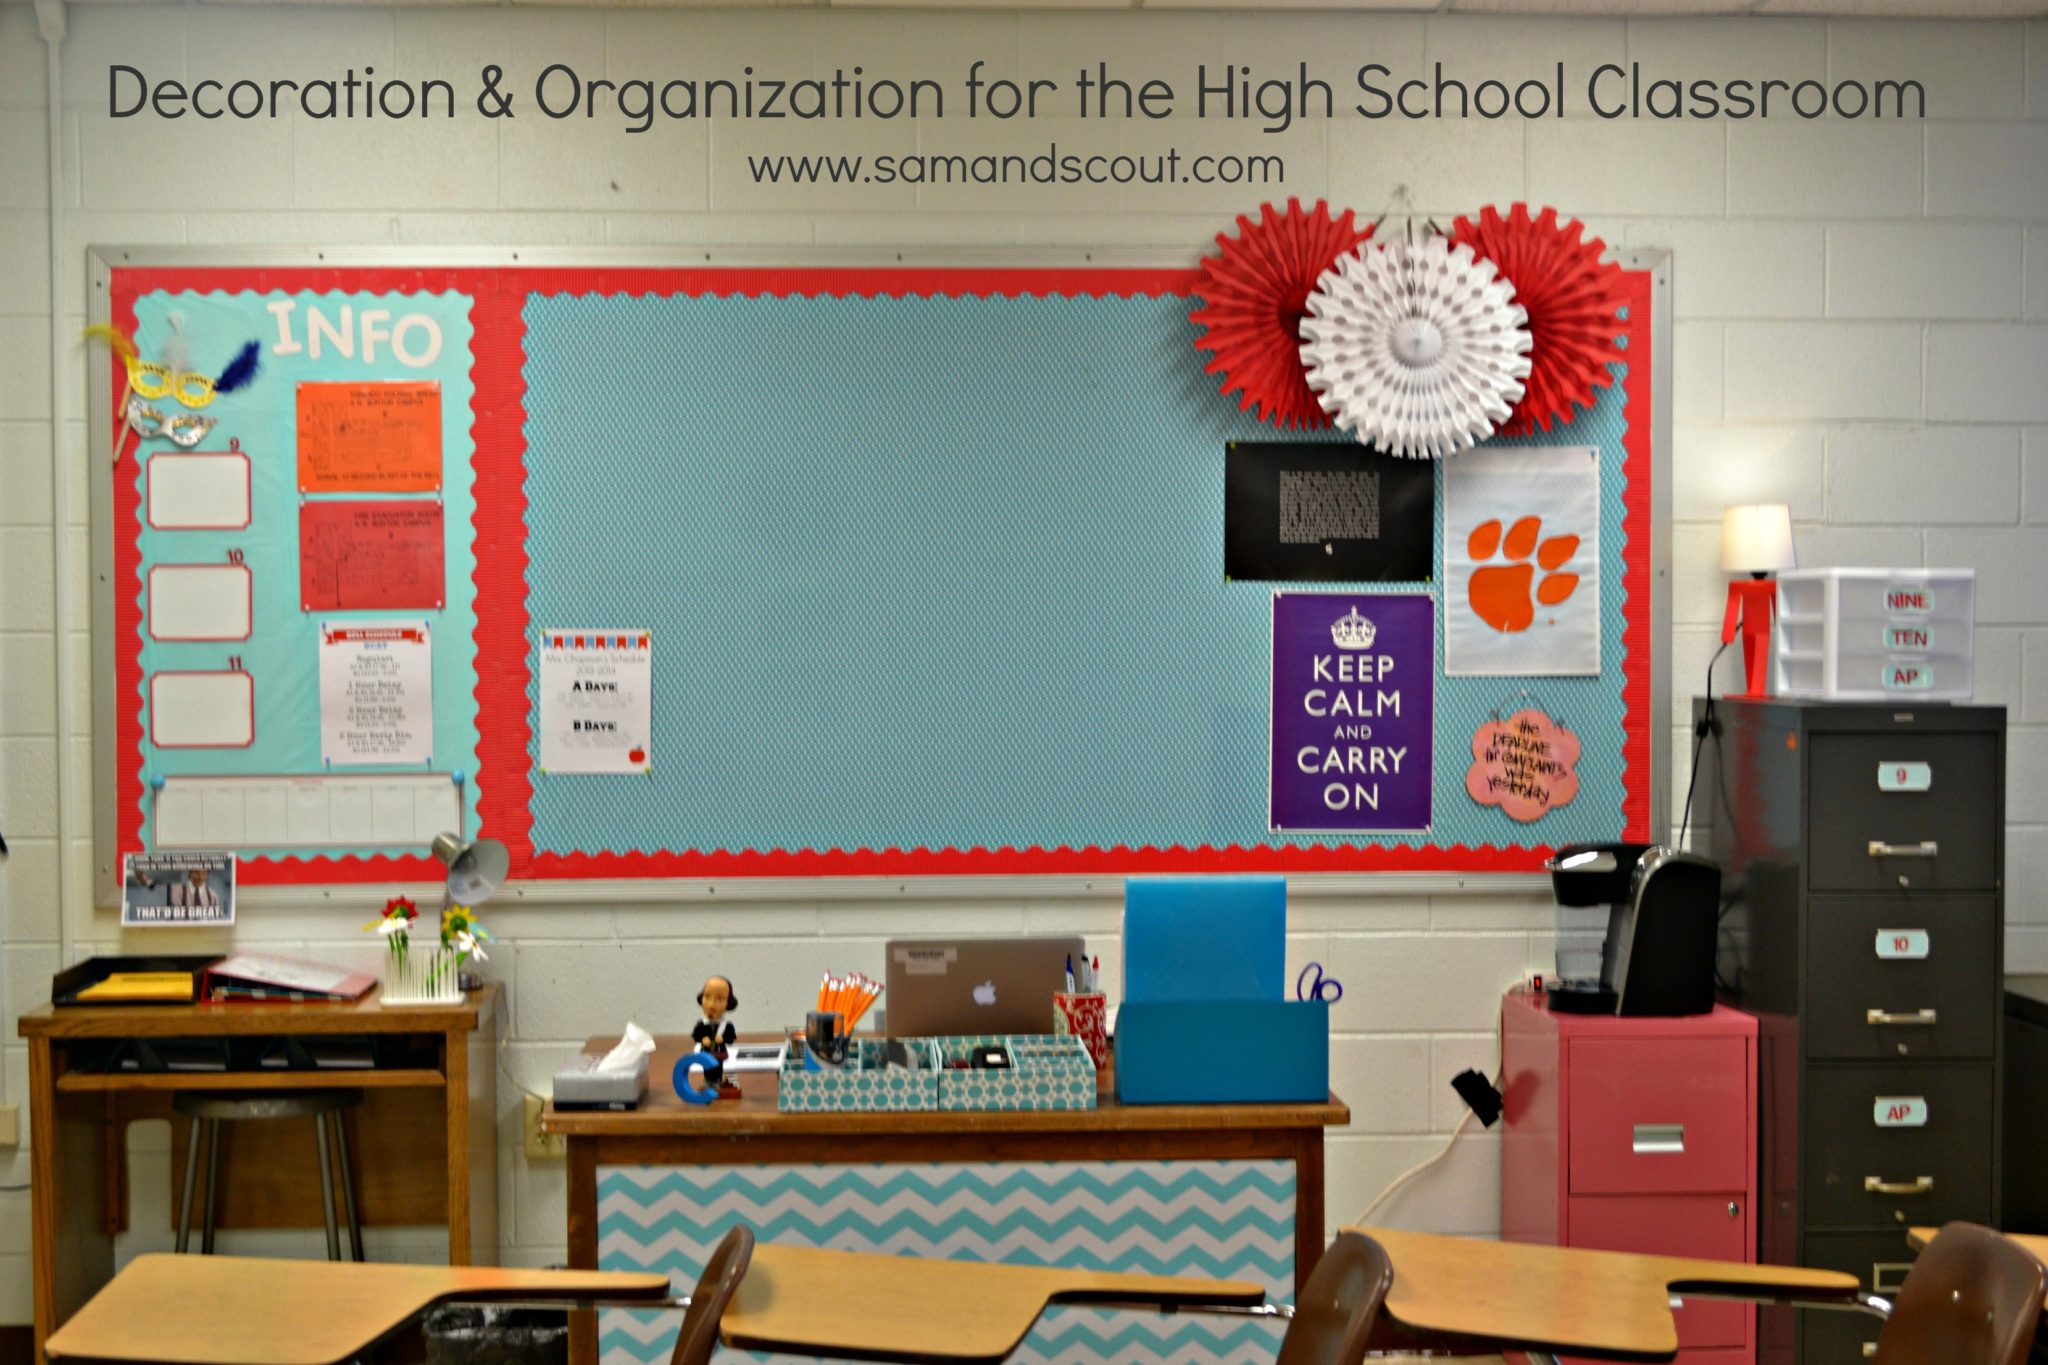 Classroom Decoration High School English ~ Decoration organization for the high school classroom